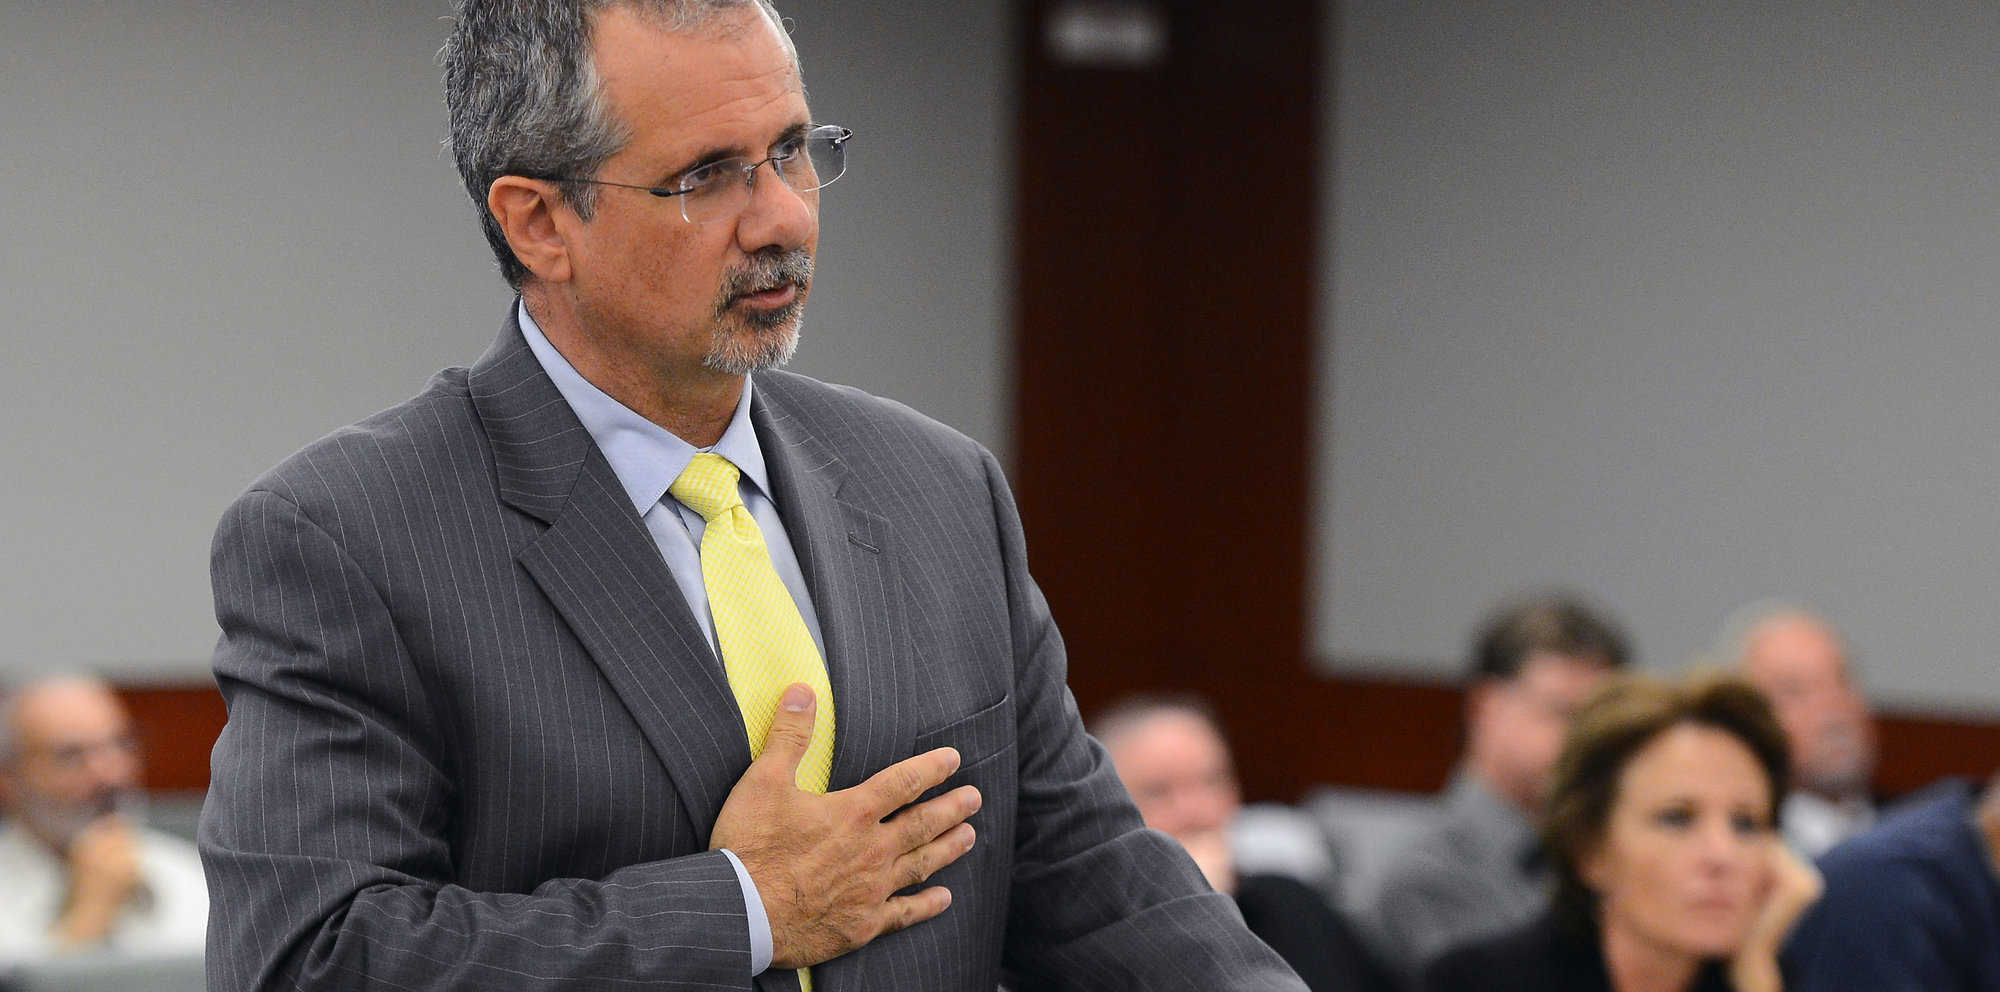 Defense attorney and state assemblyman Ozzie Fumo spoke at a hearing in Clark County District Court in 2013 in Las Vegas, Nev.